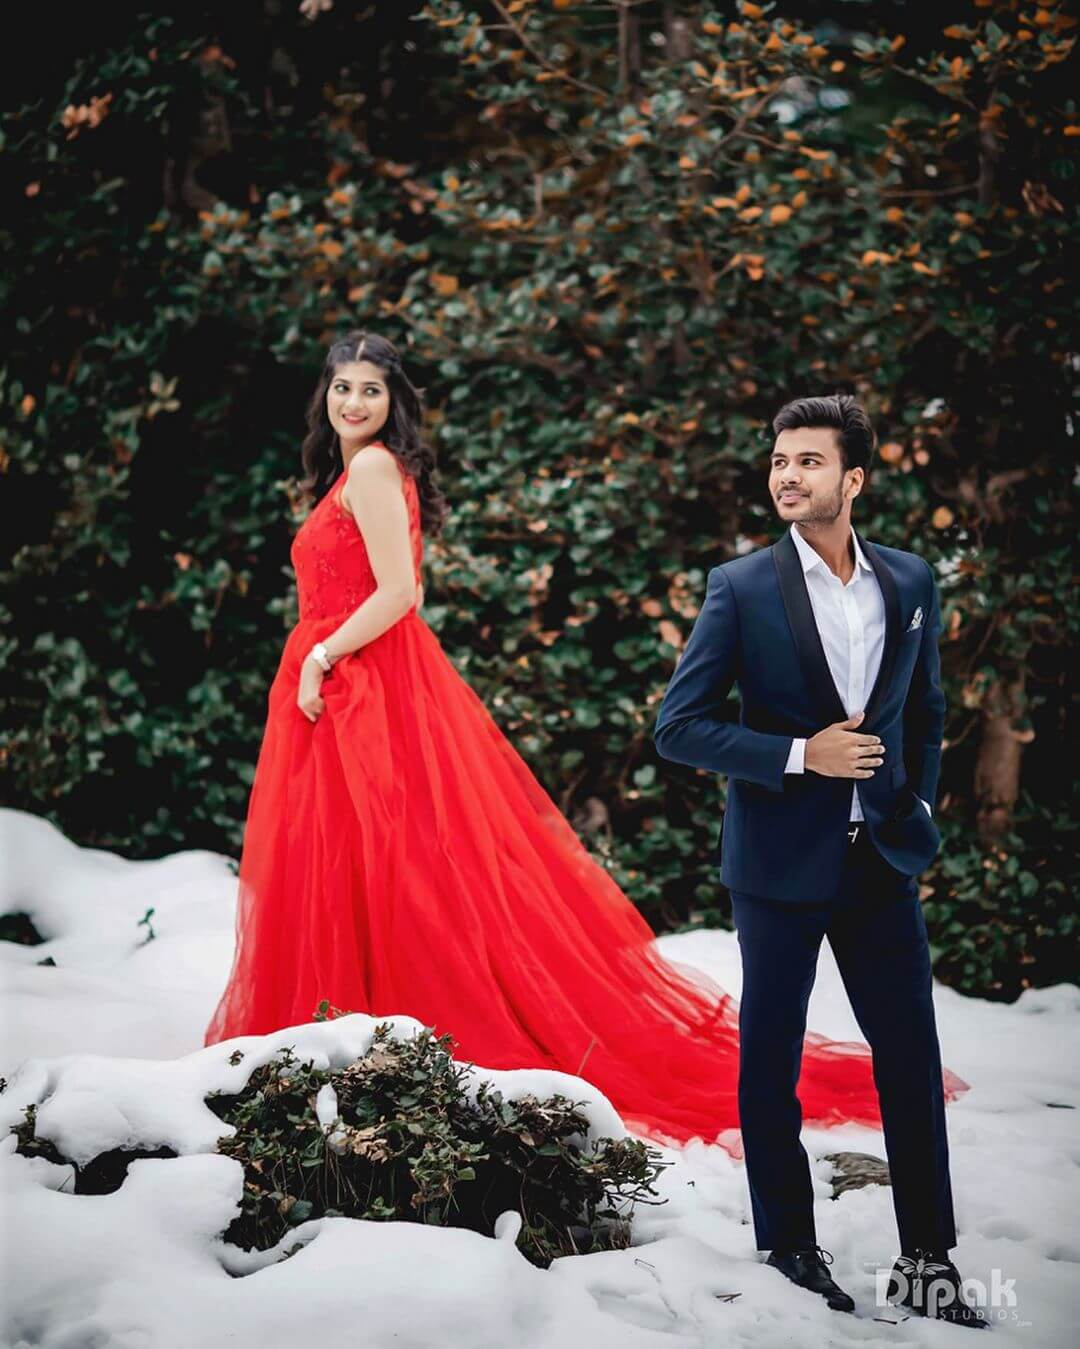 Attractive Groom Dresses for Pre Wedding Photoshoot: Swoon With Your Style